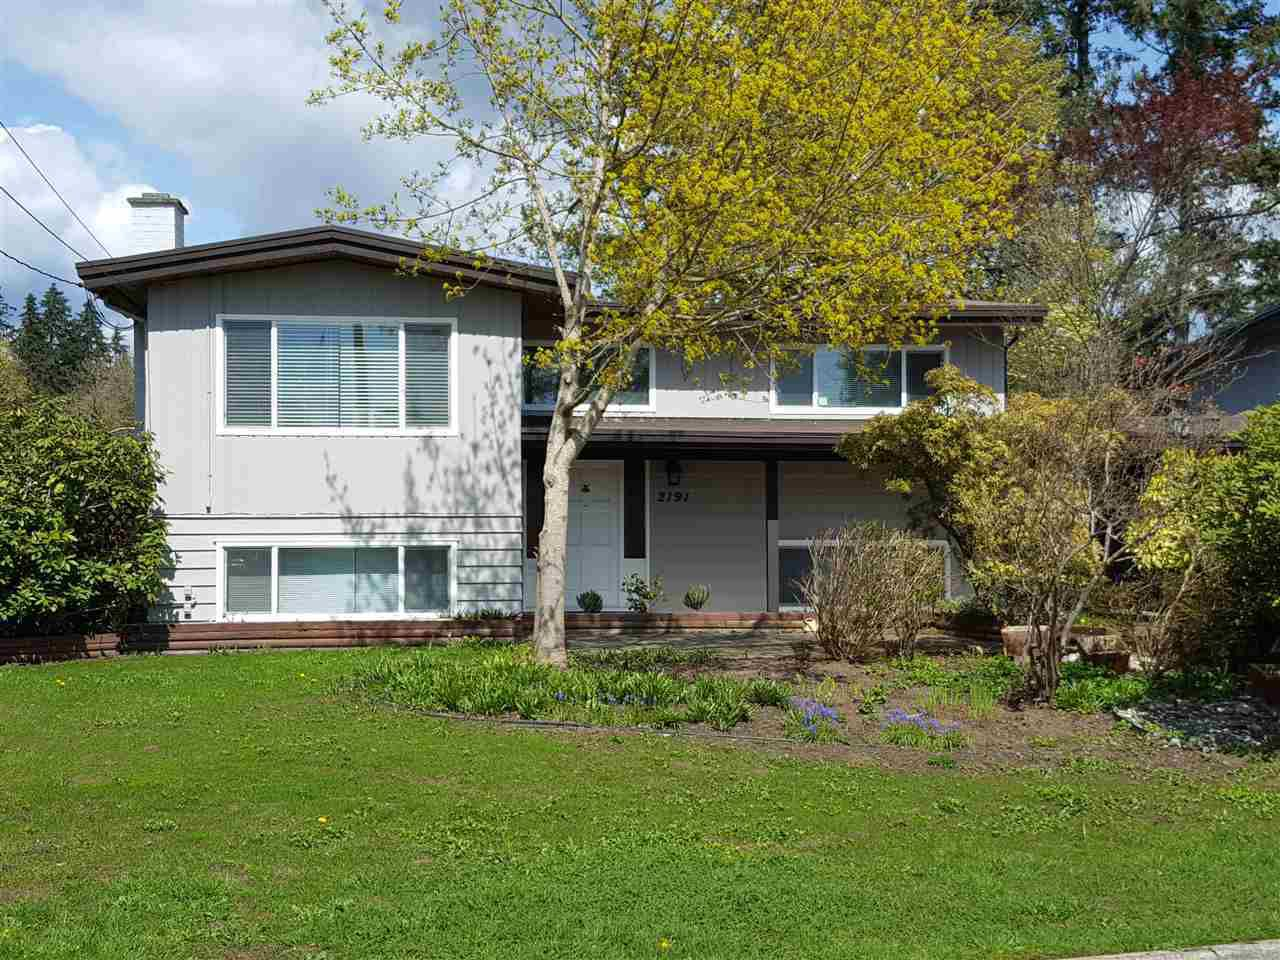 Main Photo: 2191 CENTENNIAL Avenue in Port Coquitlam: Glenwood PQ House for sale : MLS®# R2346031